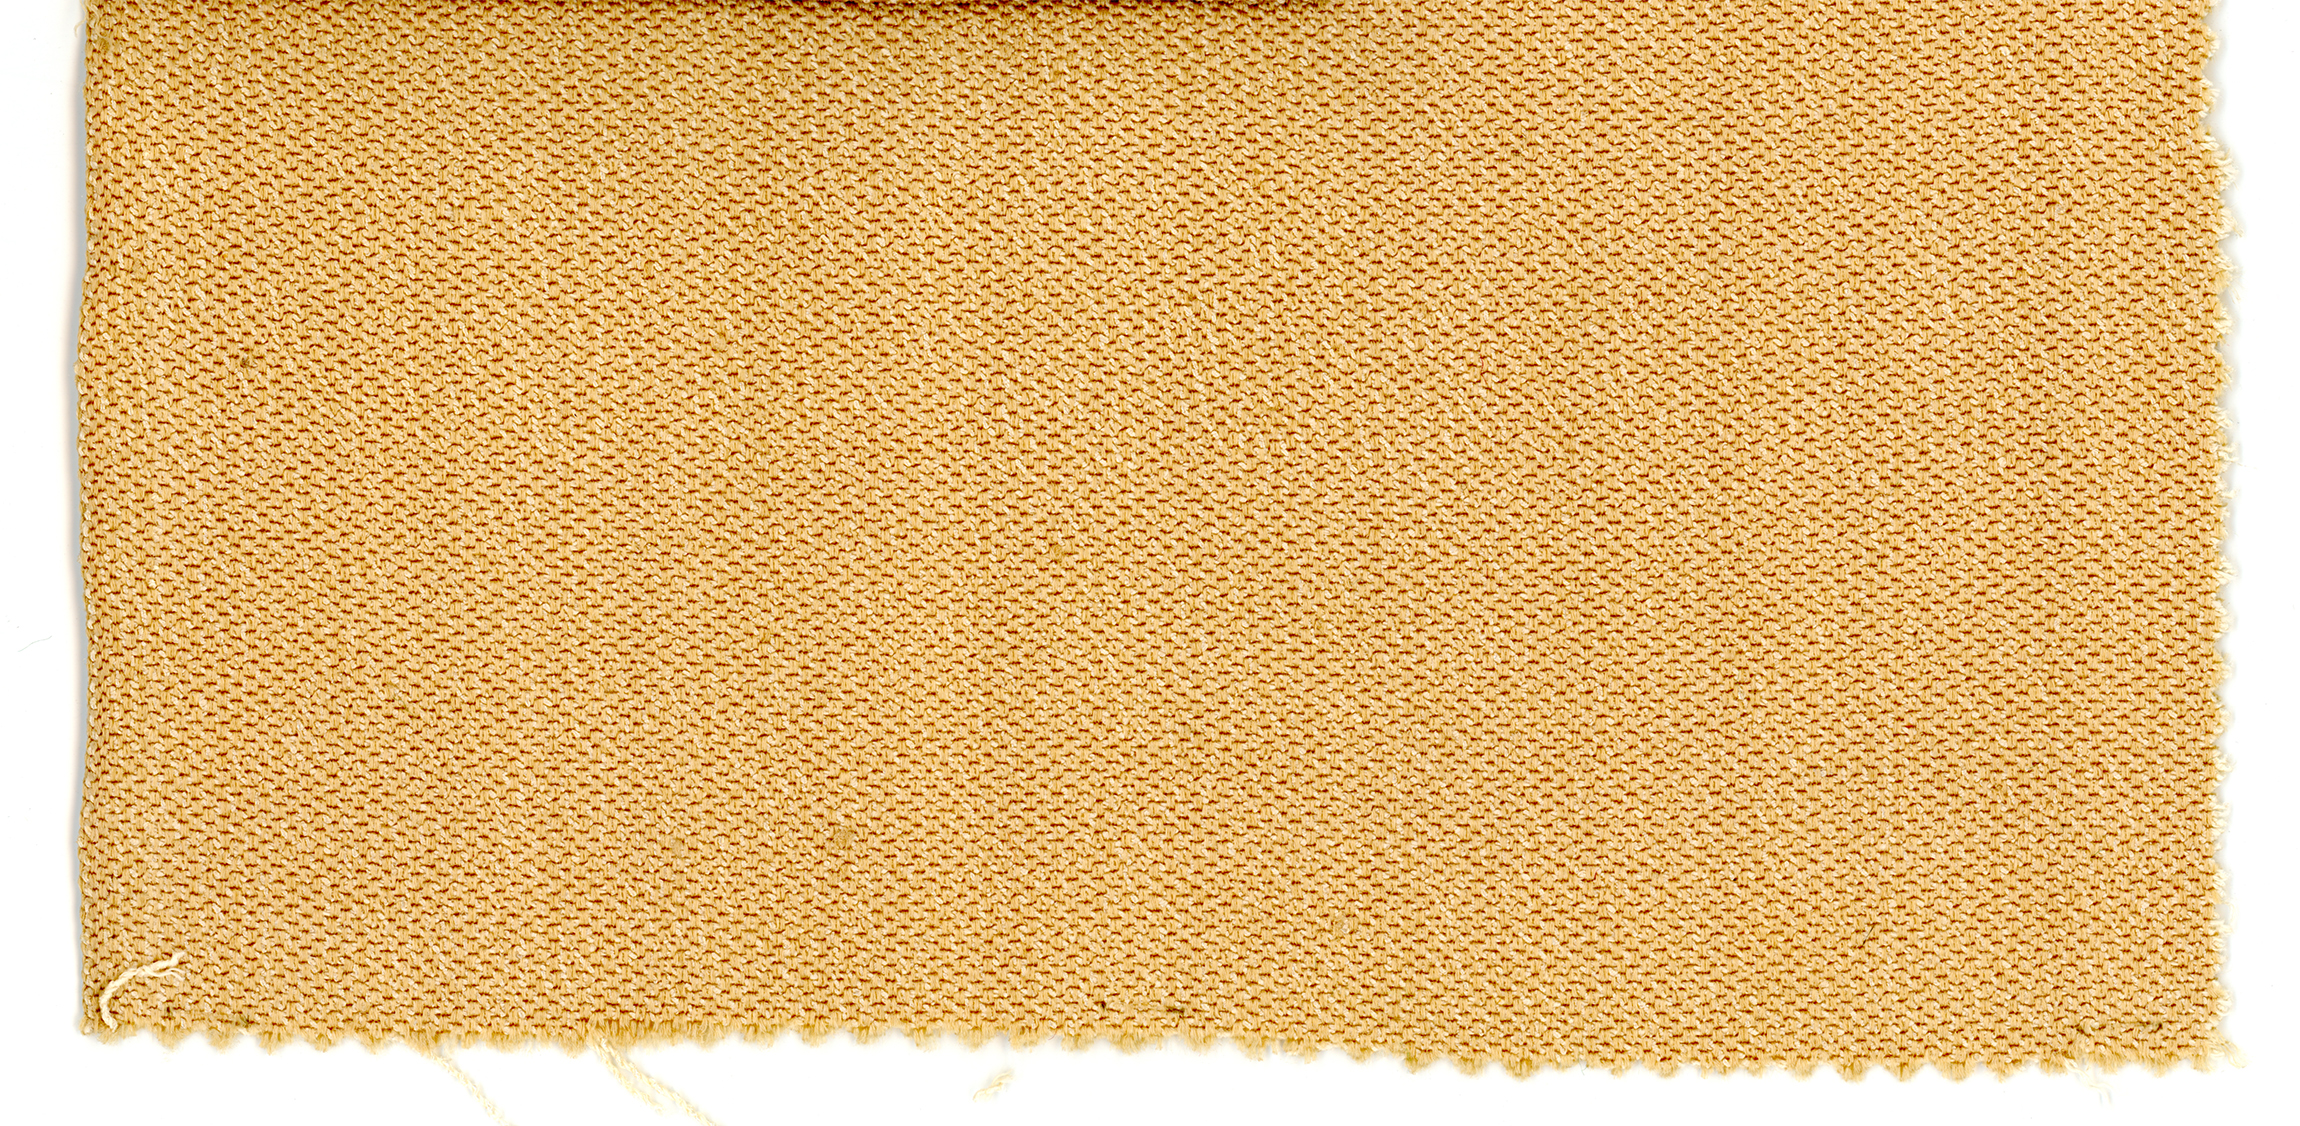 Photo of fabric, wheat color